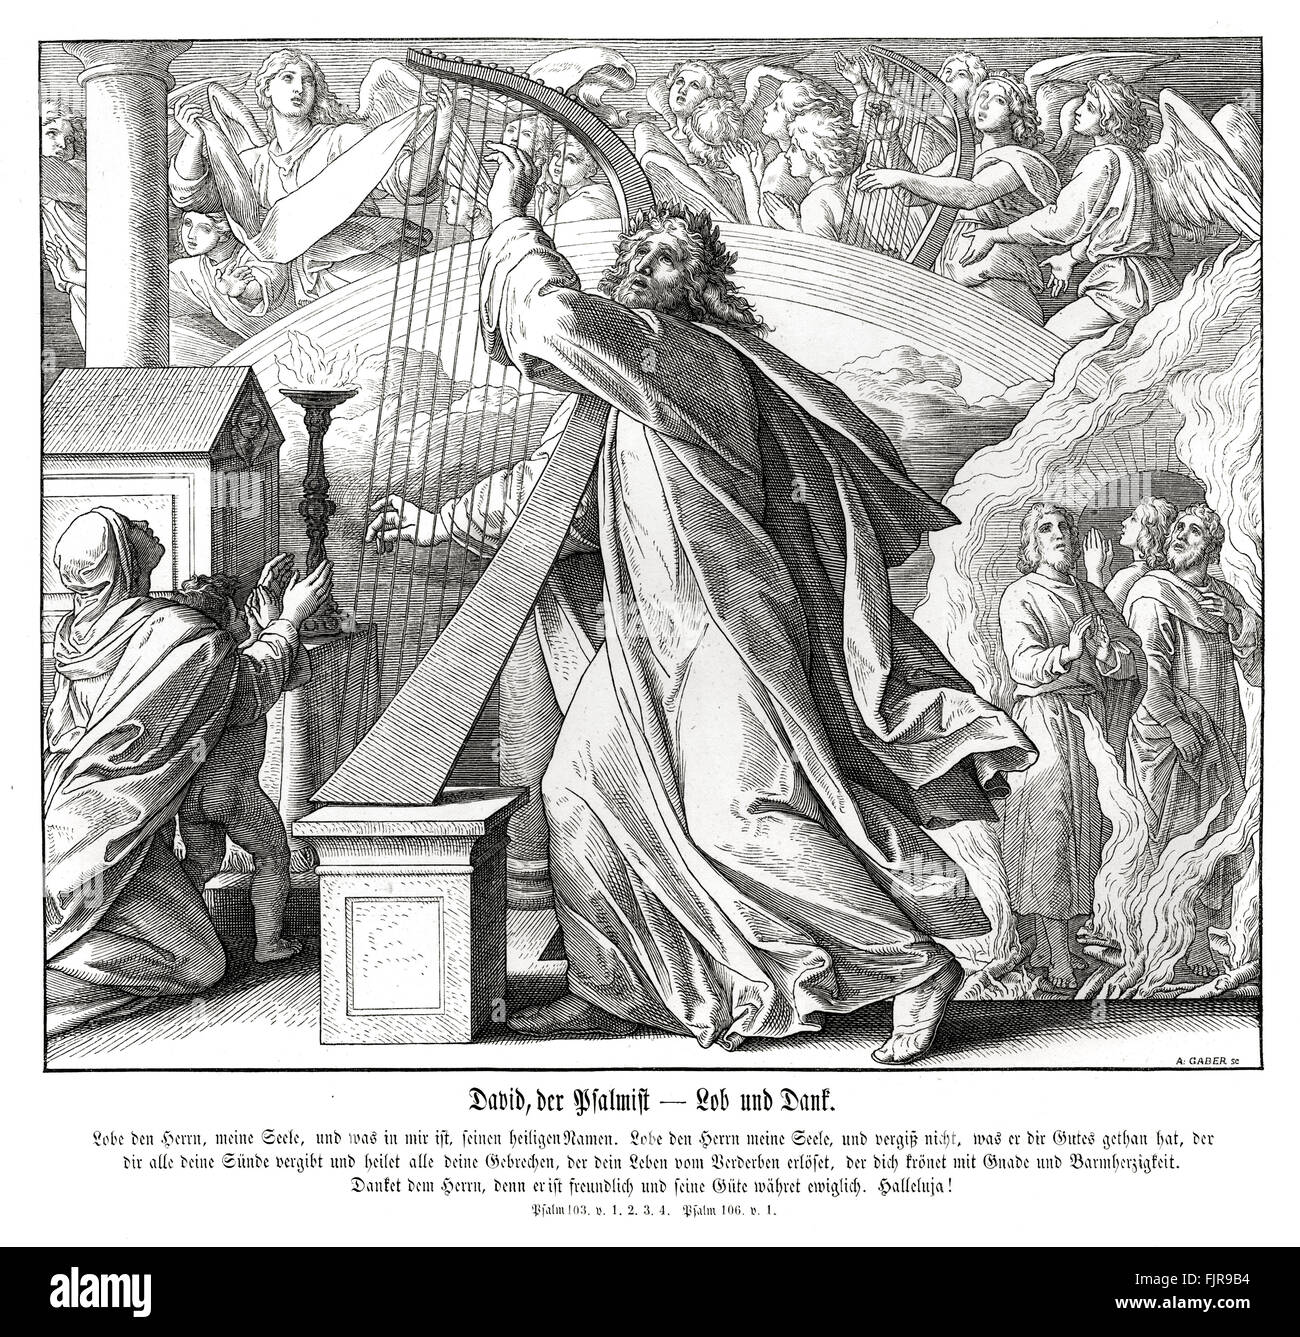 David the psalmist, Book of Psalms - praise and thanks, psalms 103 and 106, 1852-60 illustration by Julius Schnorr - Stock Image